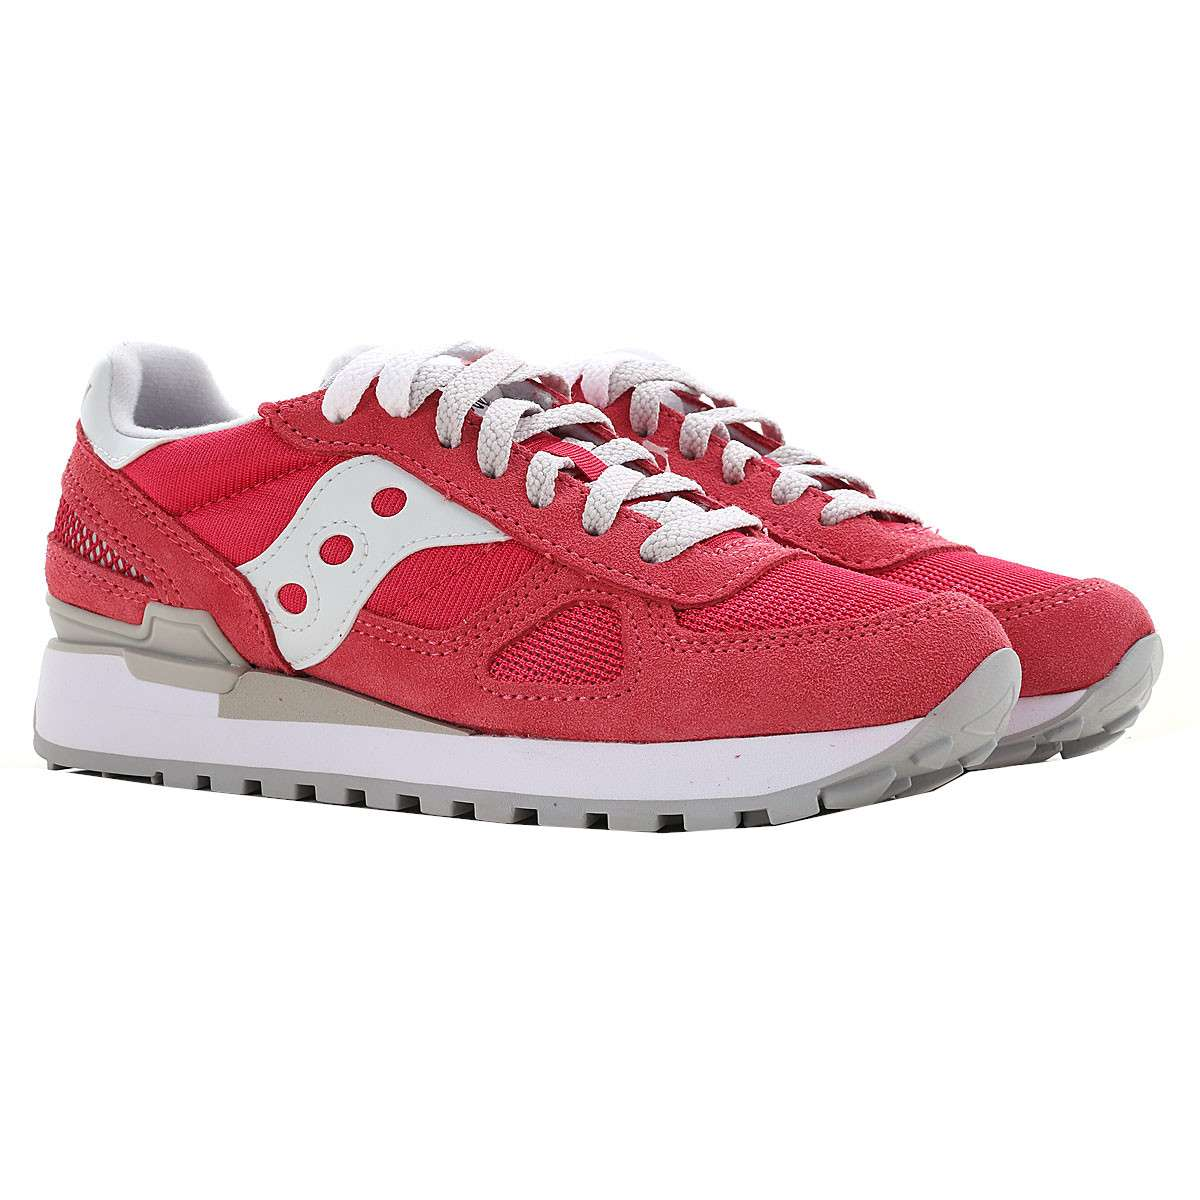 https://www.parmax.com/media/catalog/product/a/i/AI-Outlet_Parmax-Sneackers-Saucony-S1108-677-B.jpg